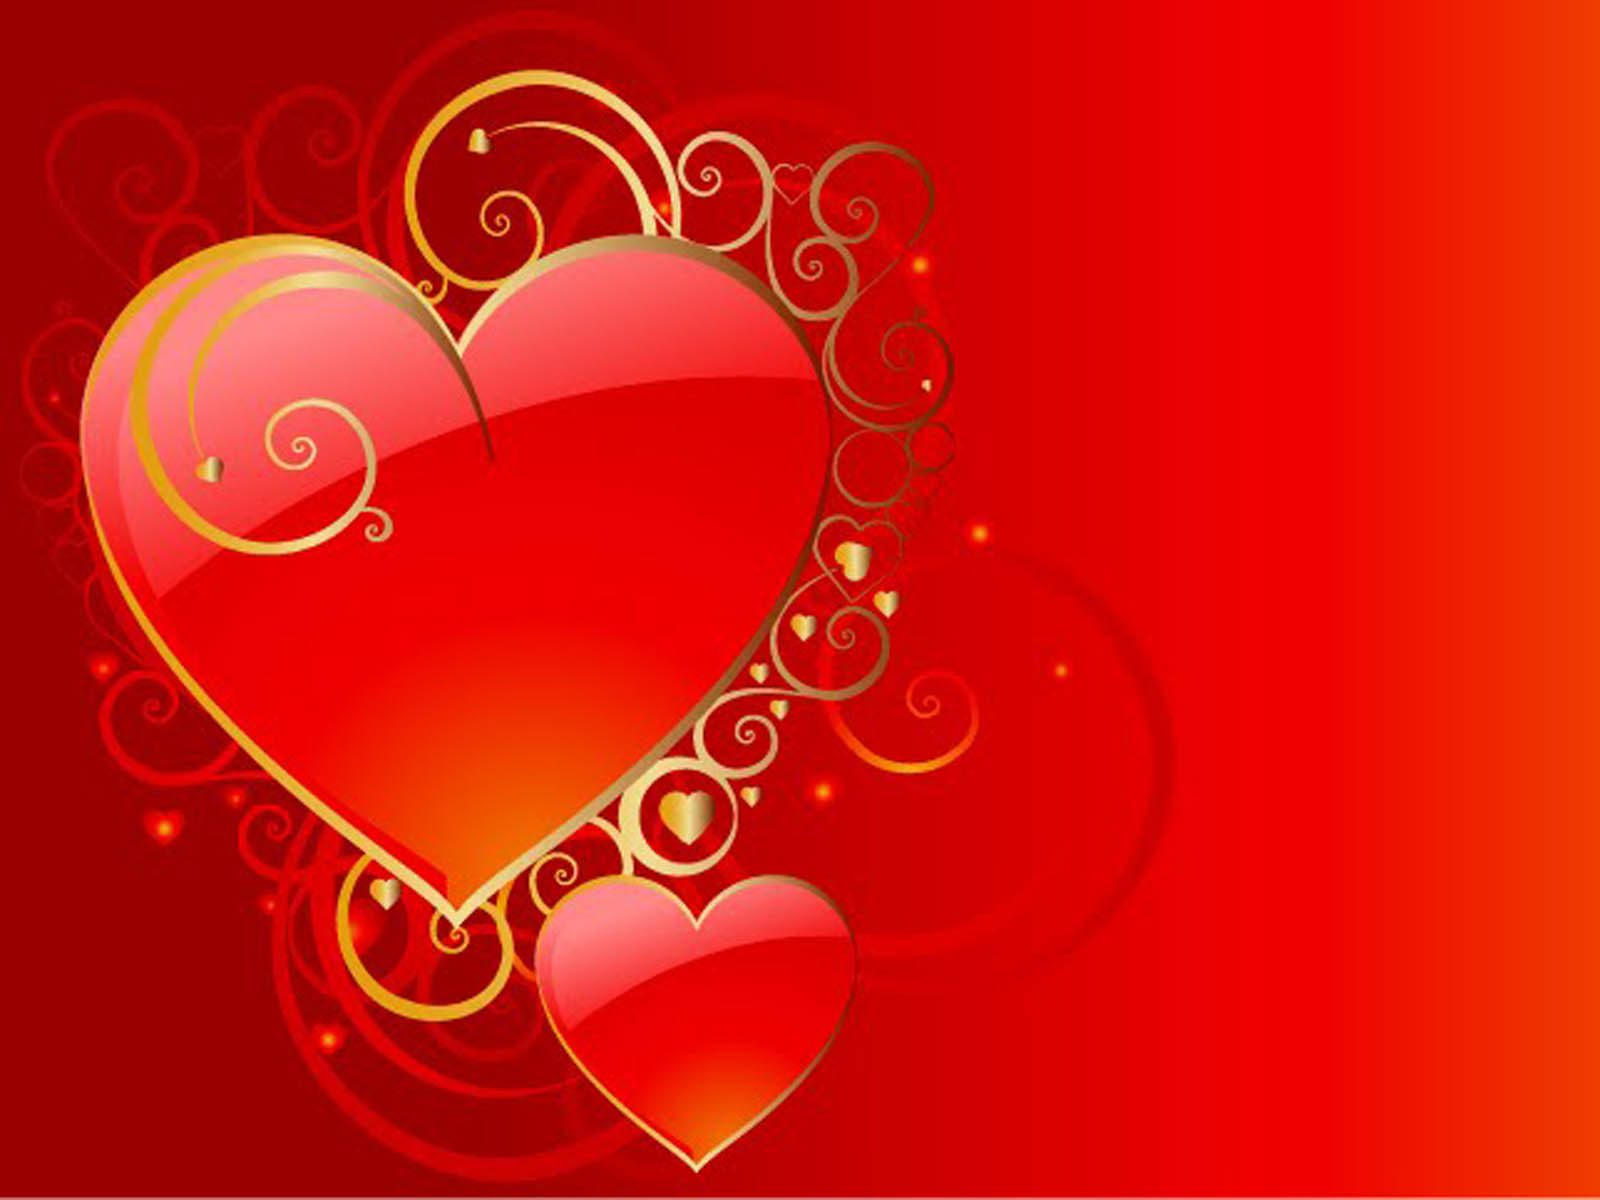 Love Wallpapers Thimes : wallpapers: Love Heart Wallpapers